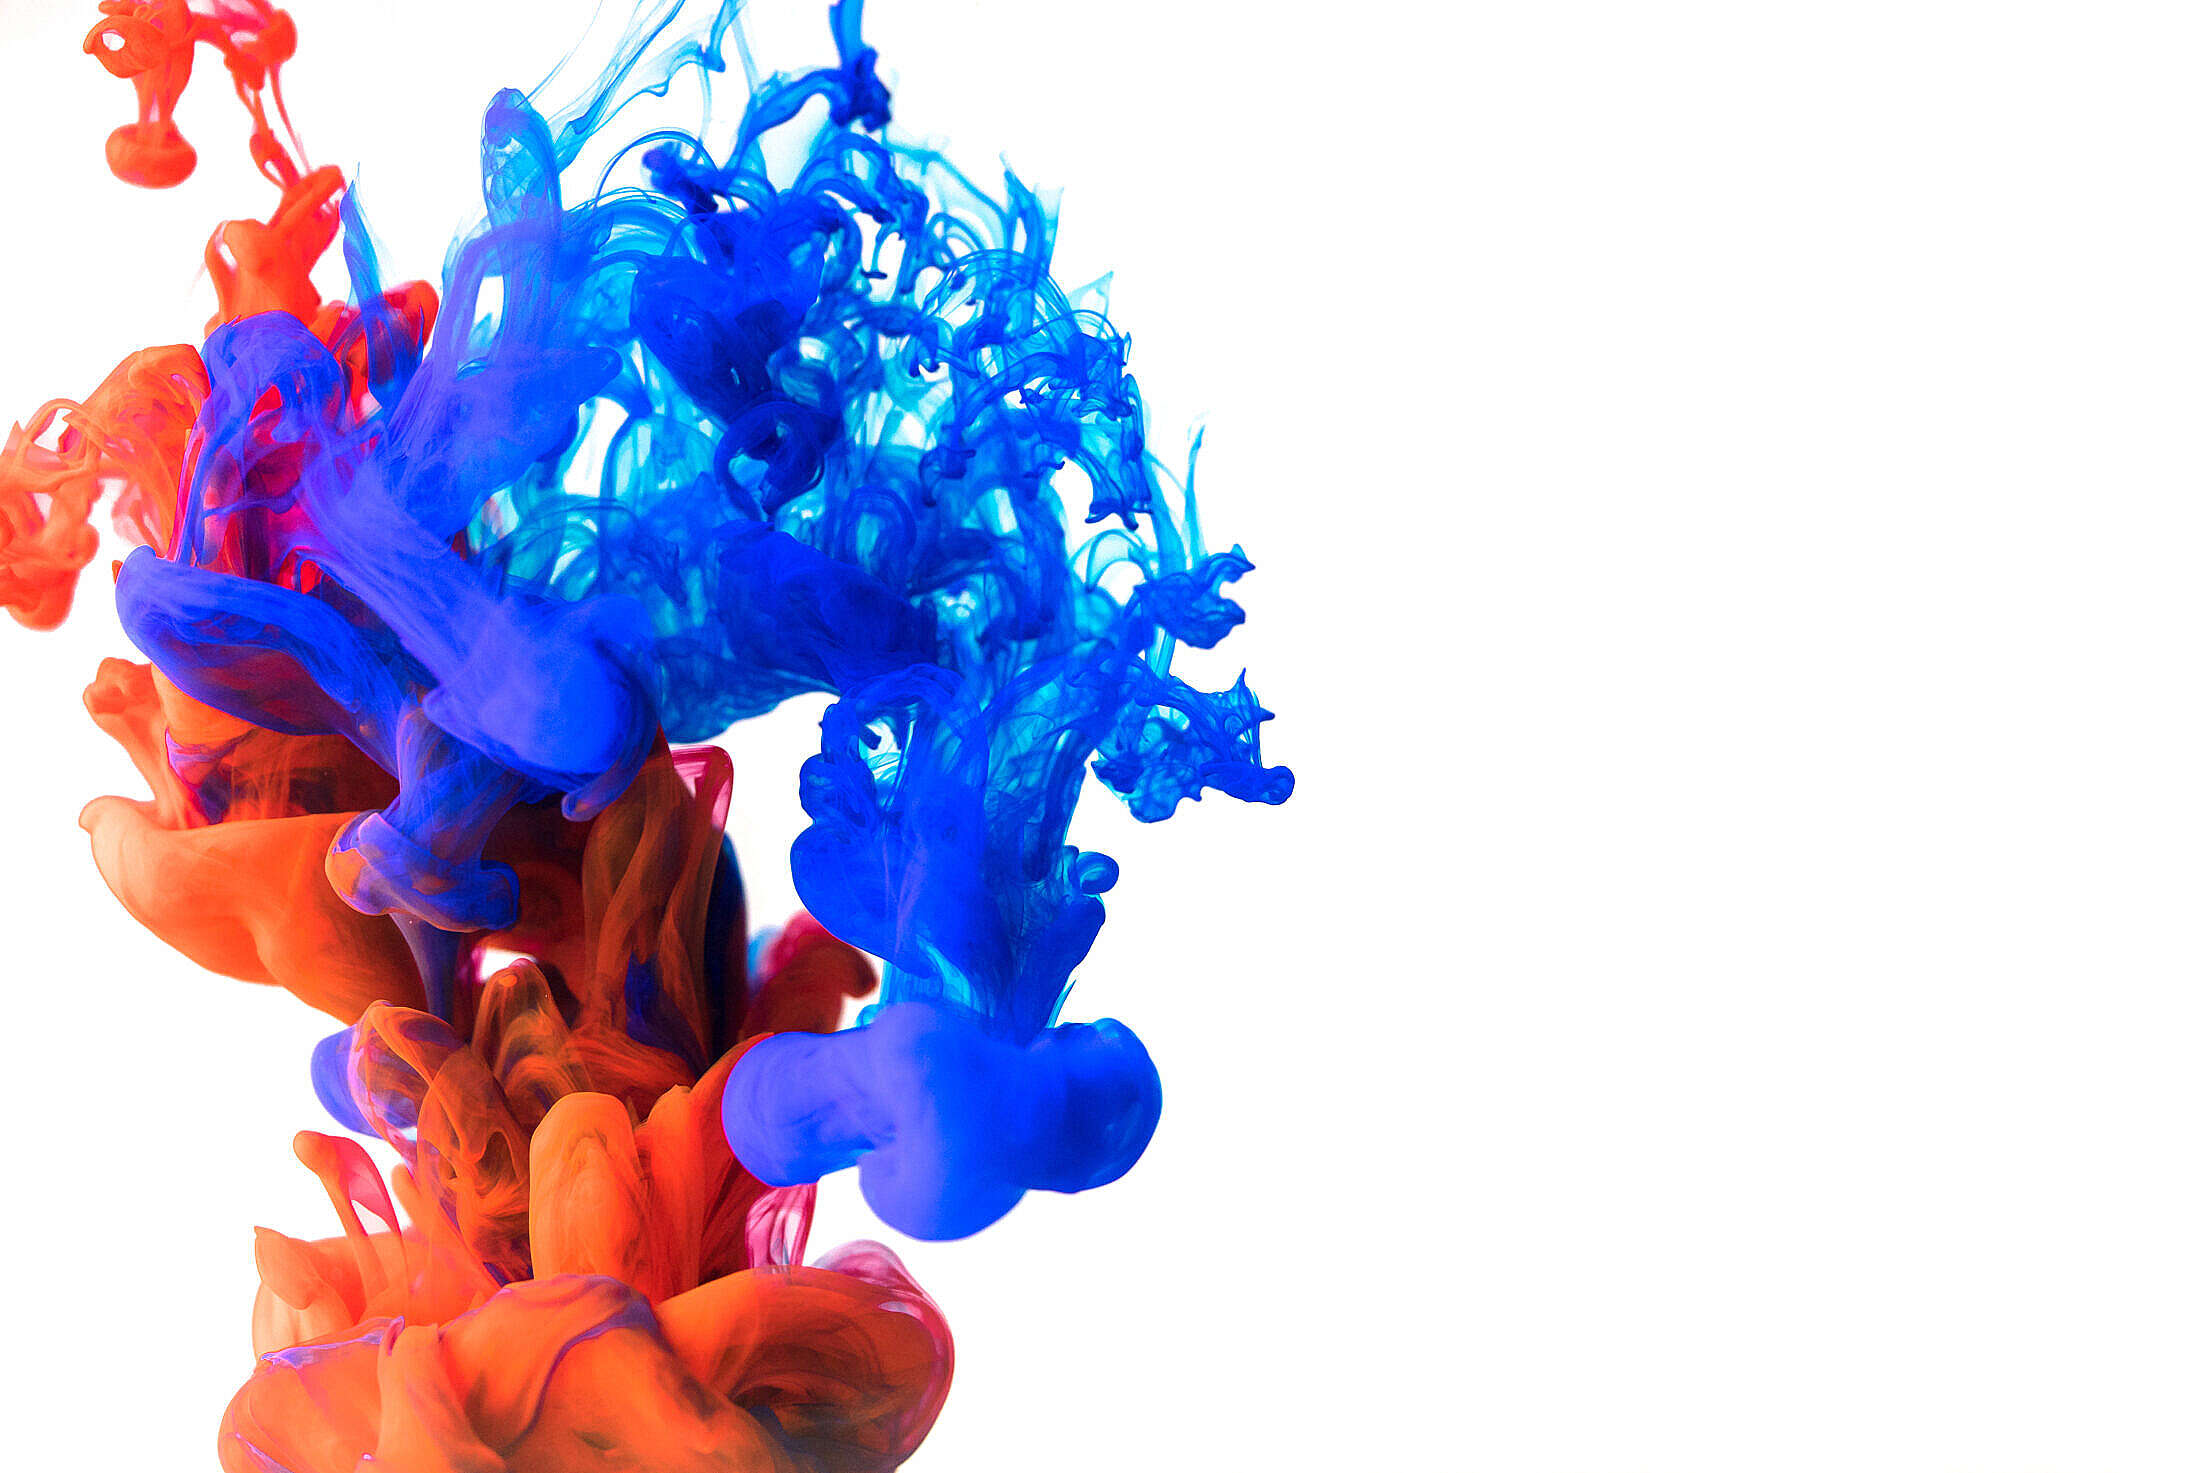 Red and Blue Ink Explosion Free Stock Photo